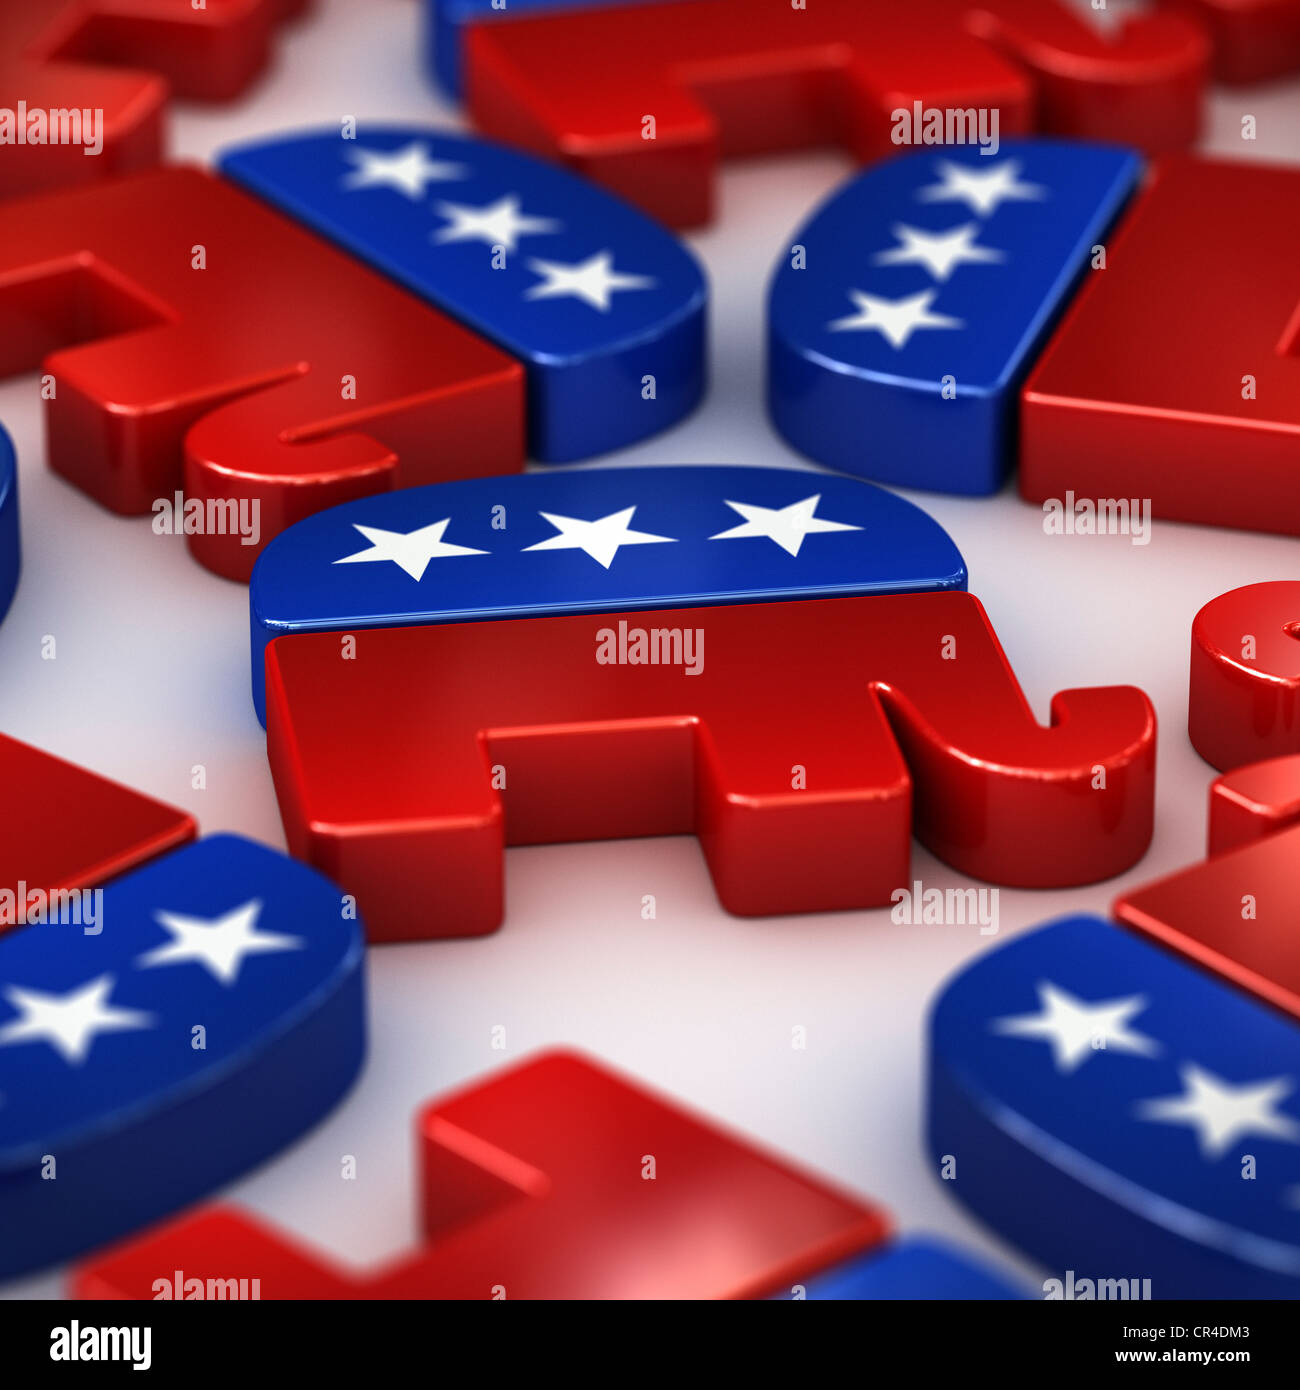 Democratic And Republican Symbols Stock Photos Democratic And